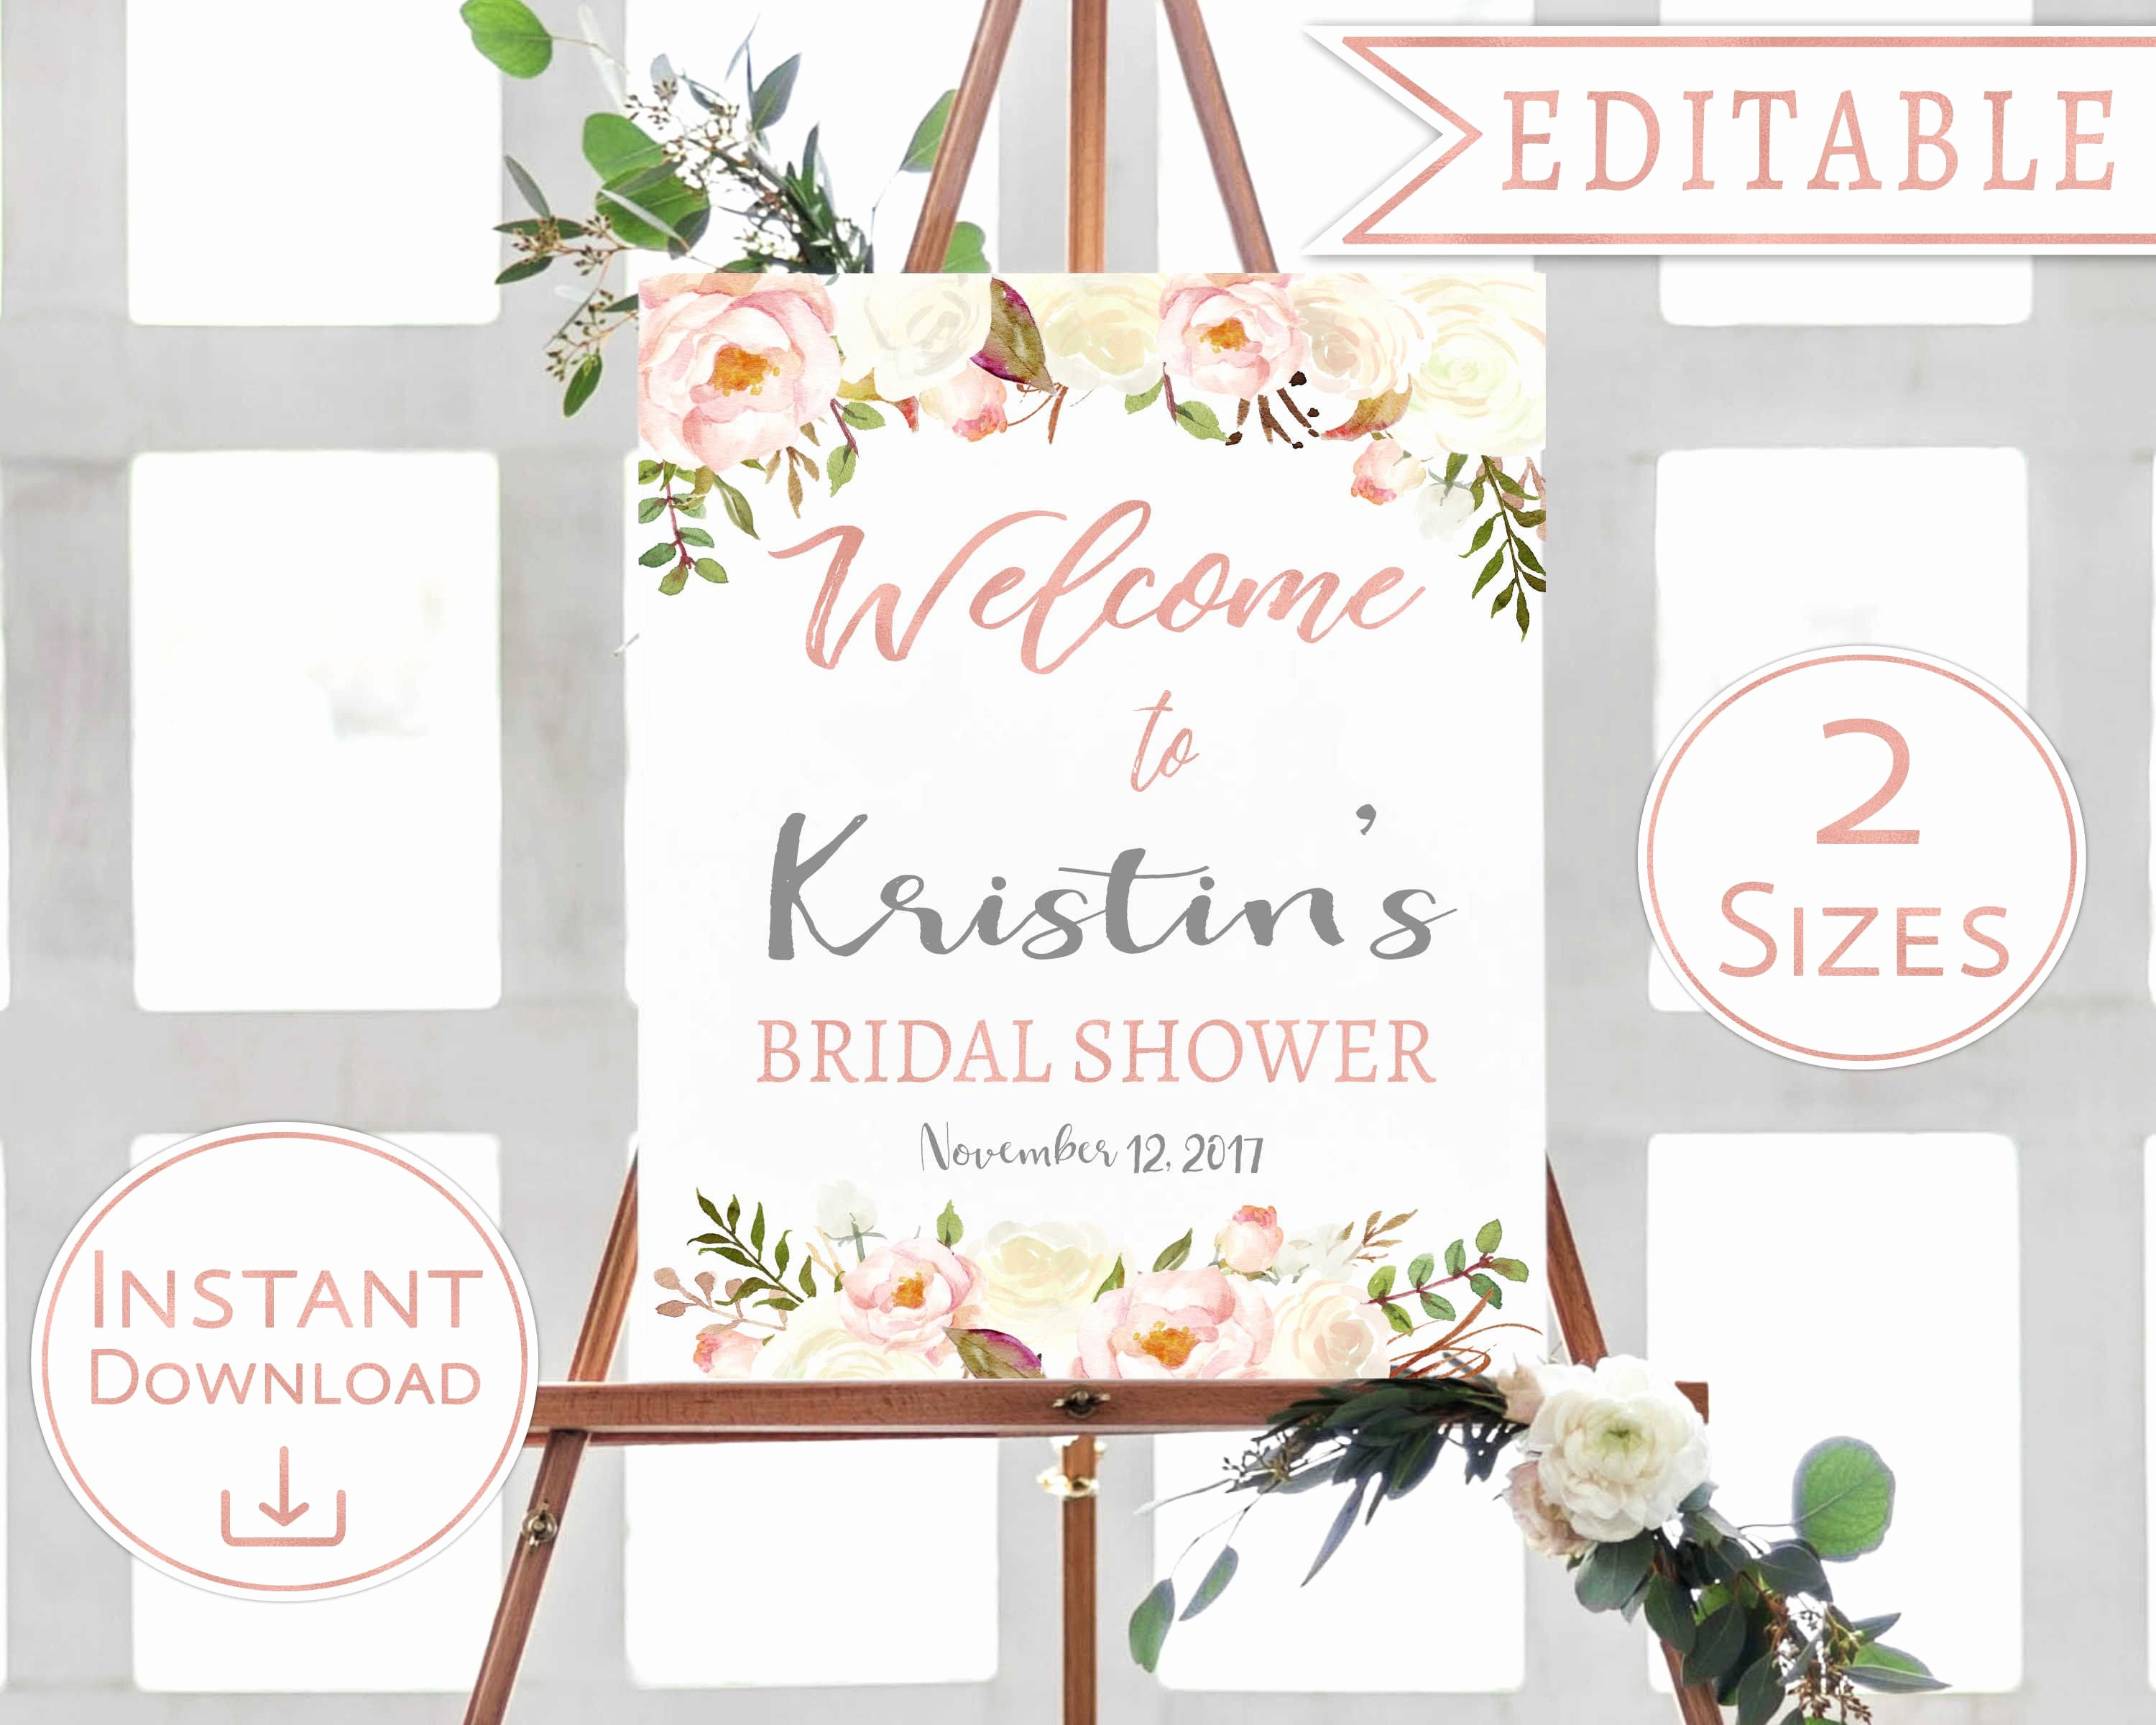 Bridal Shower Welcome Sign Template New Bridal Shower Wel E Sign Floral White Blush Watercolor